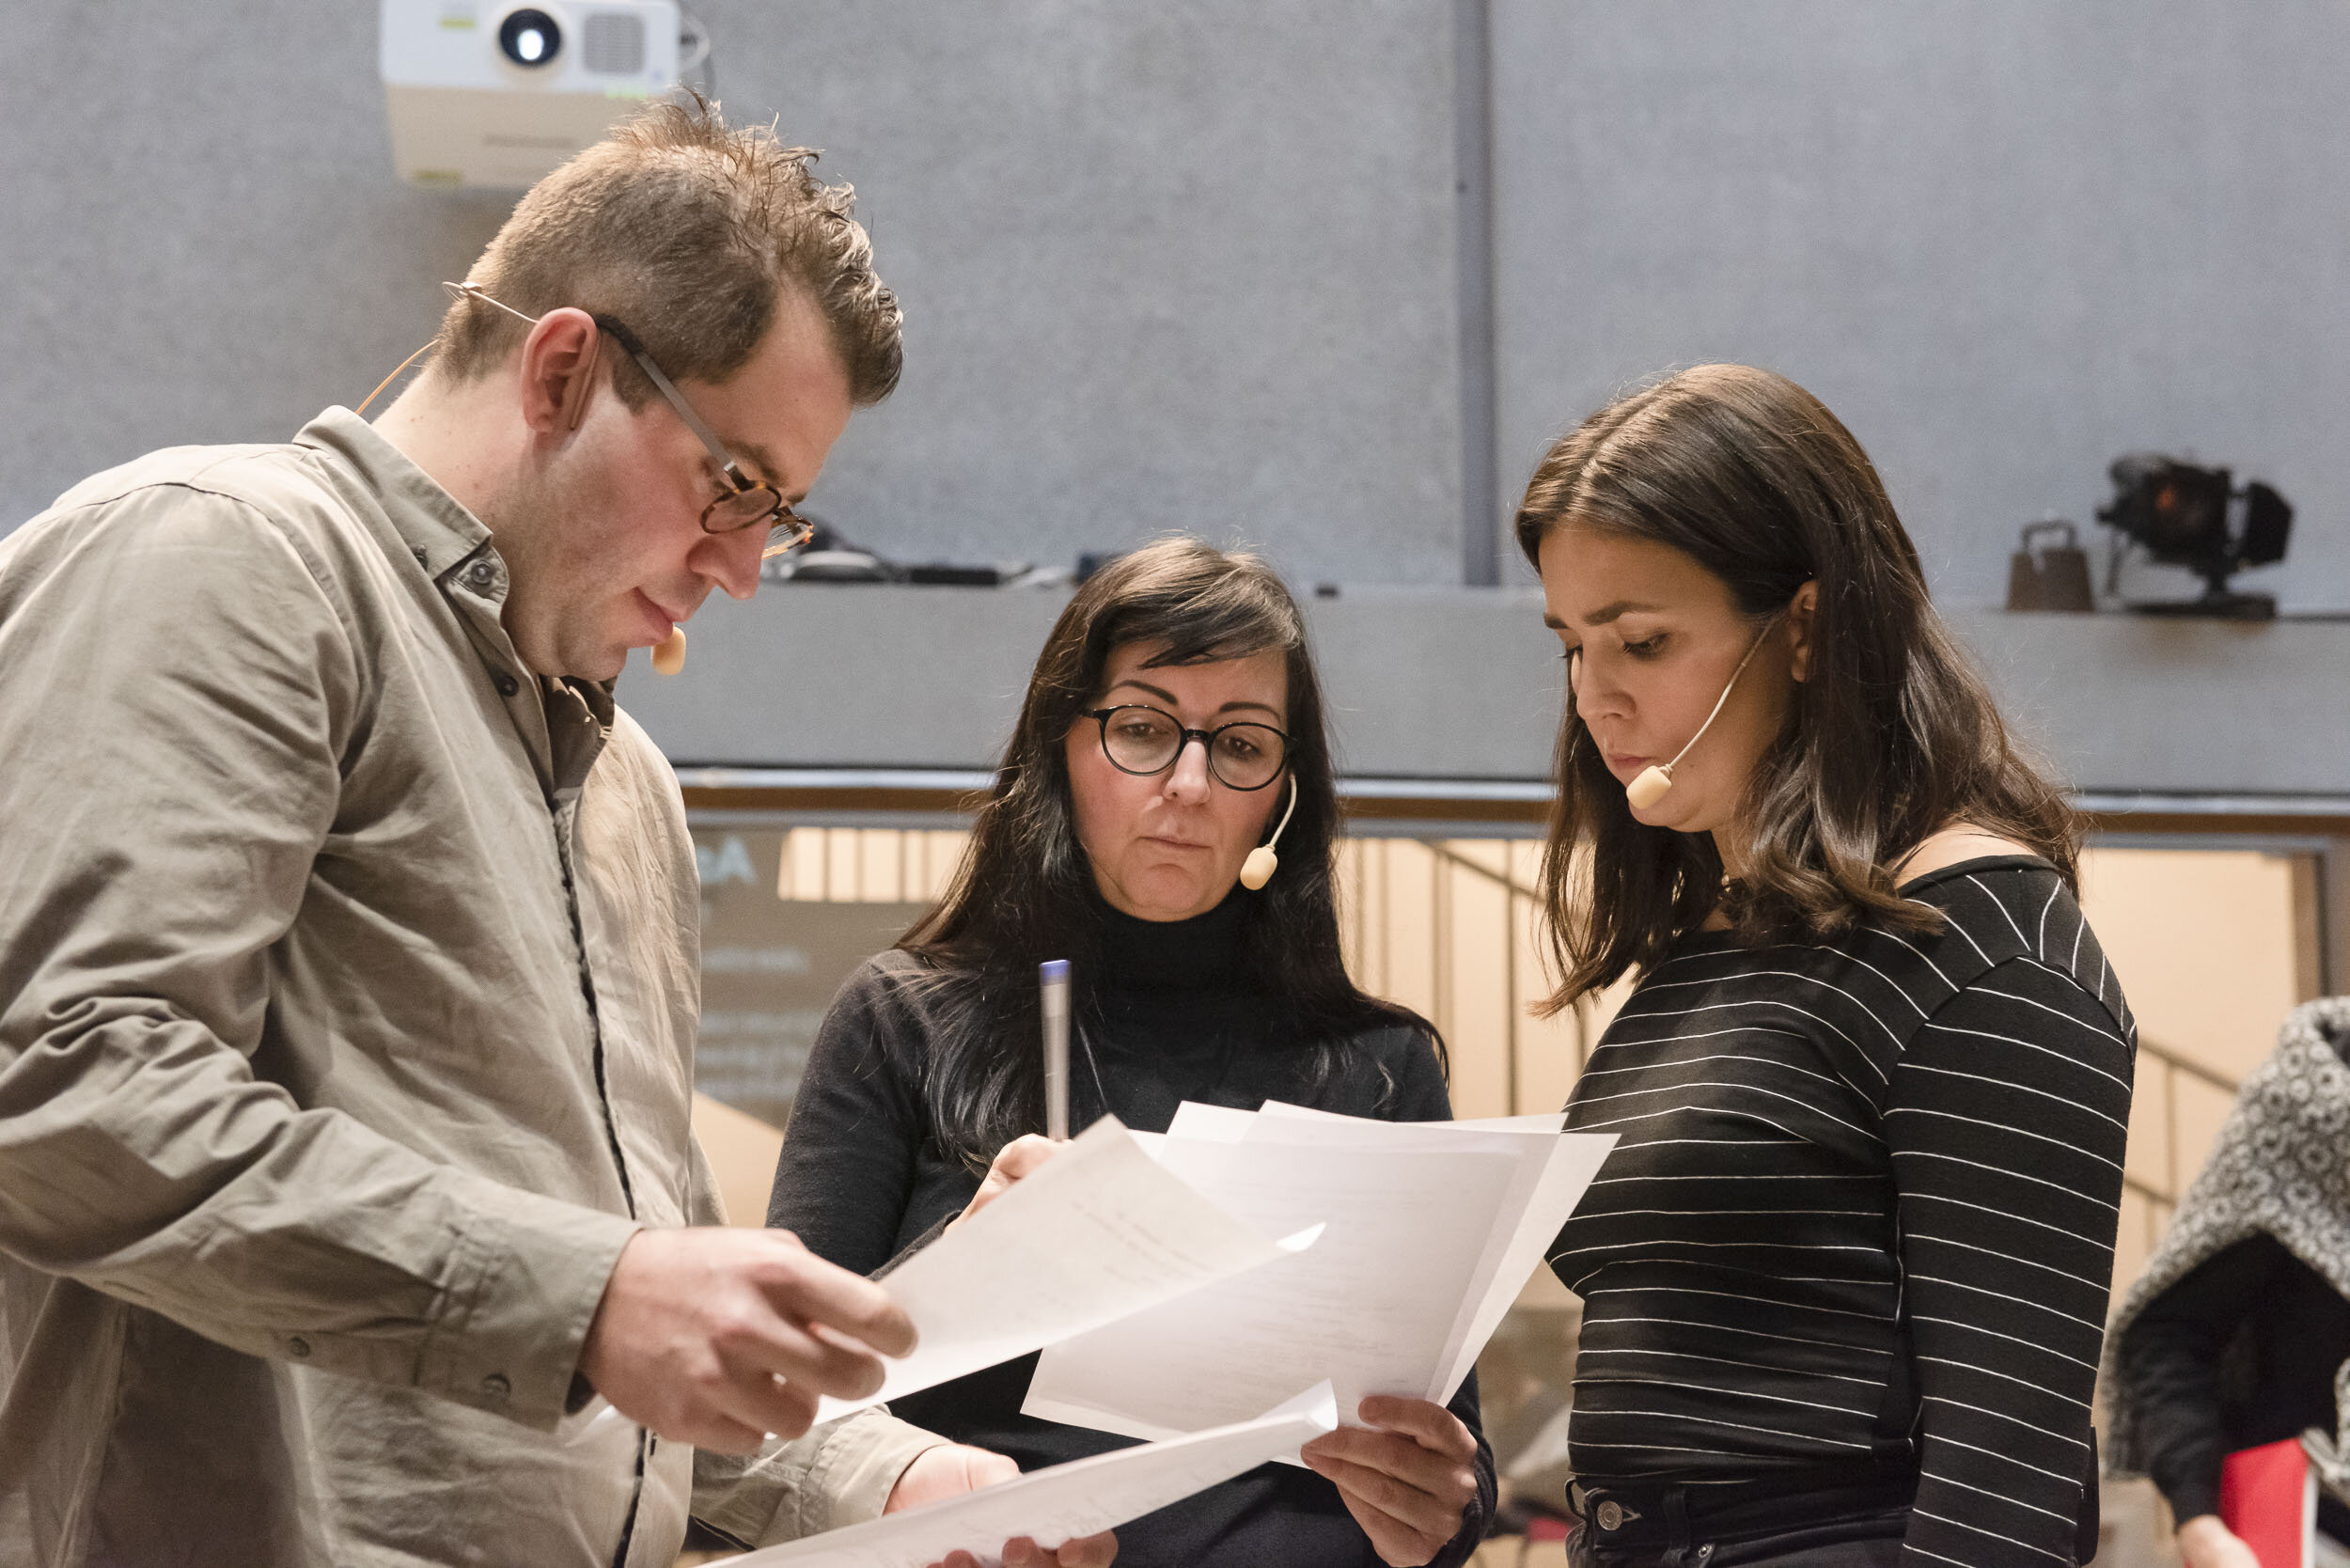 Actors Johannes Wanselow (Alexander) and Ella Schartner (Asha) working with the scenes together with writer/director Thérèse Ahlbeck, in front of a live audience at Skissernas museum in Lund. Photo Peo Olsson.